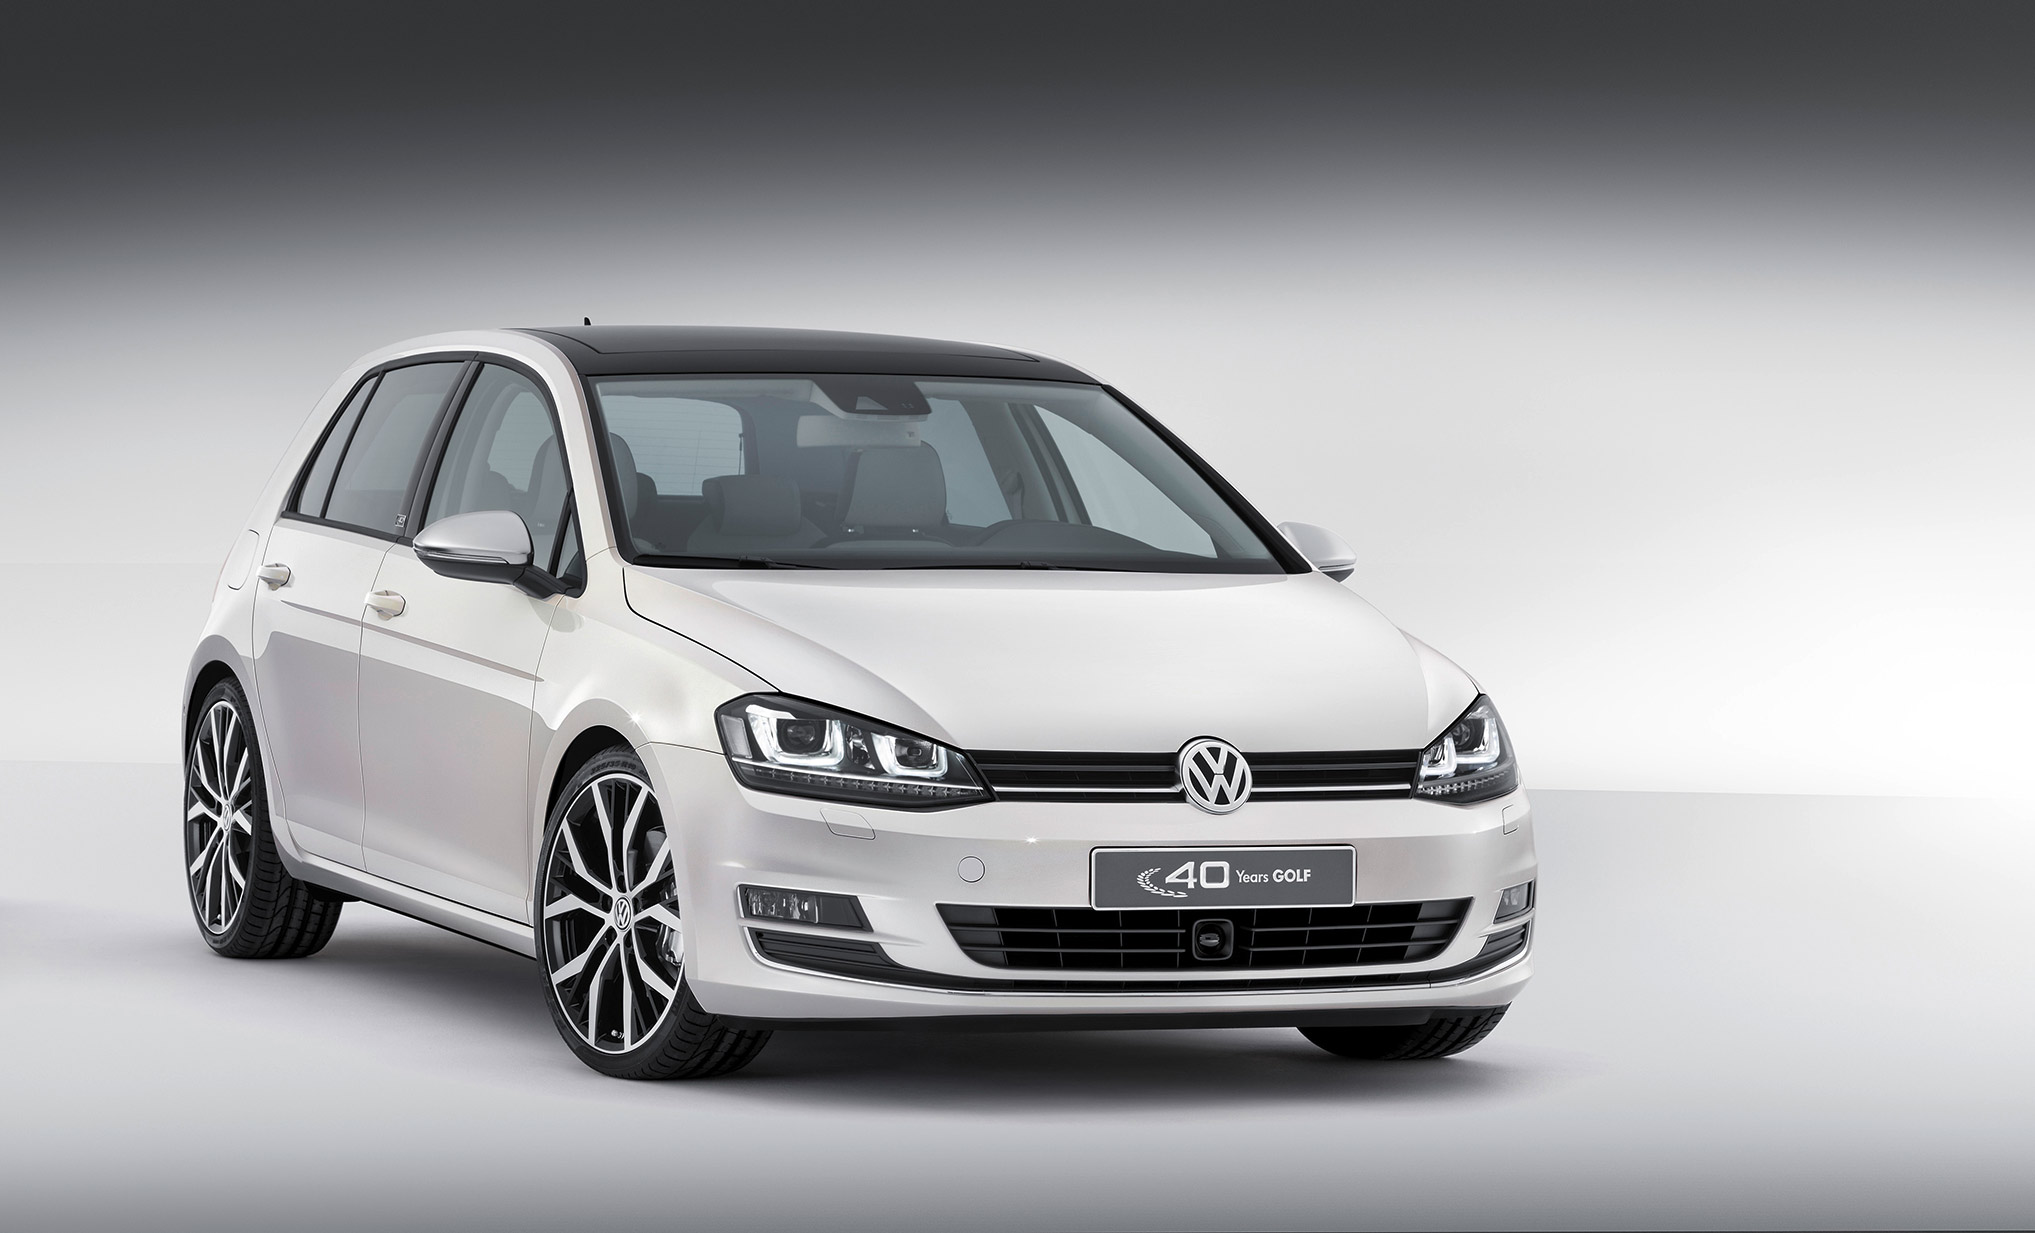 volkswagen-golf-edition-2014-4